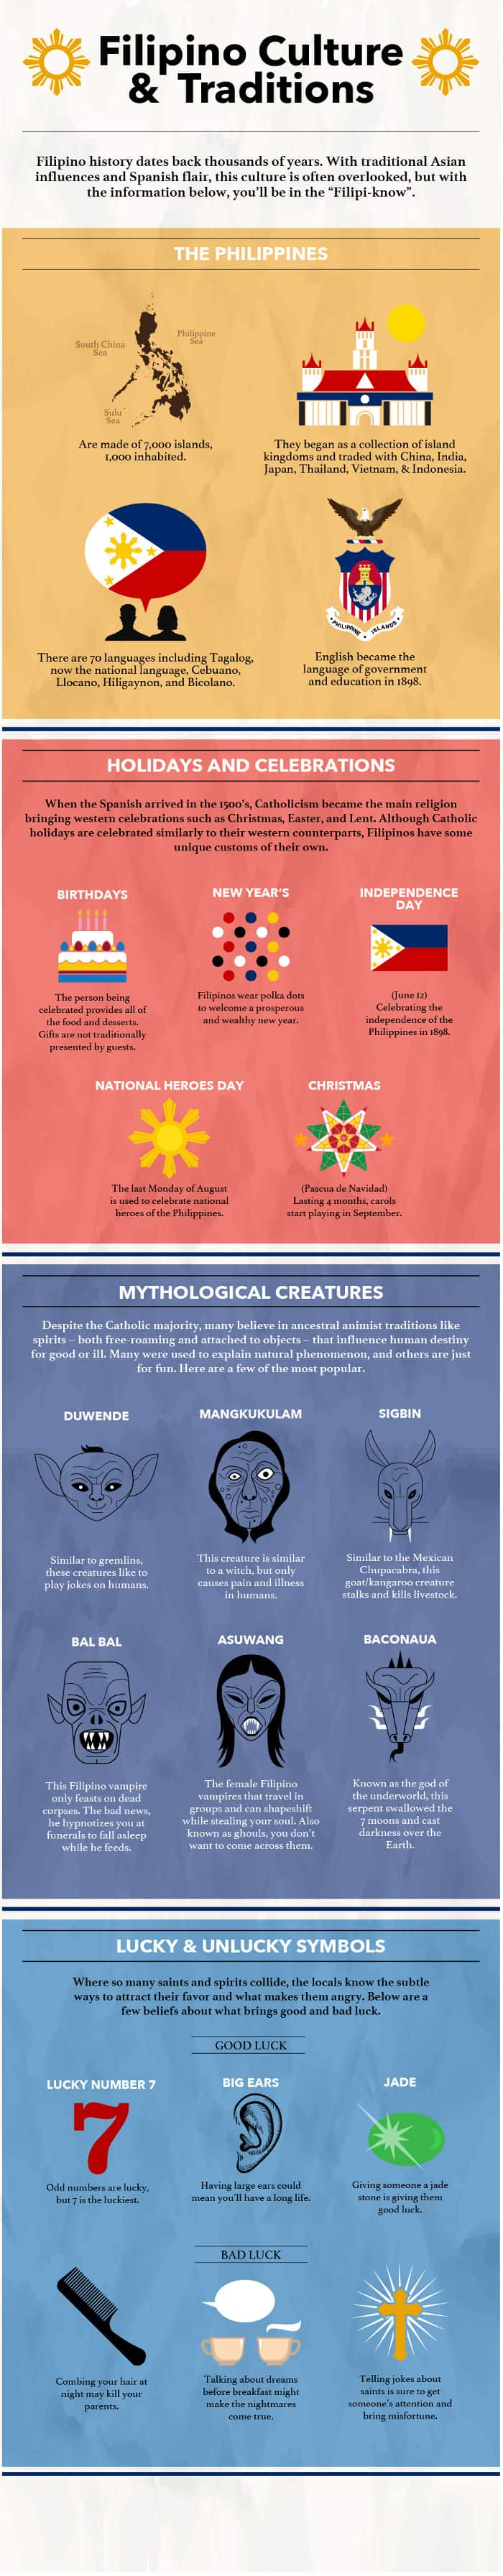 Filipino-Culture-and-Traditions-Infographic_3